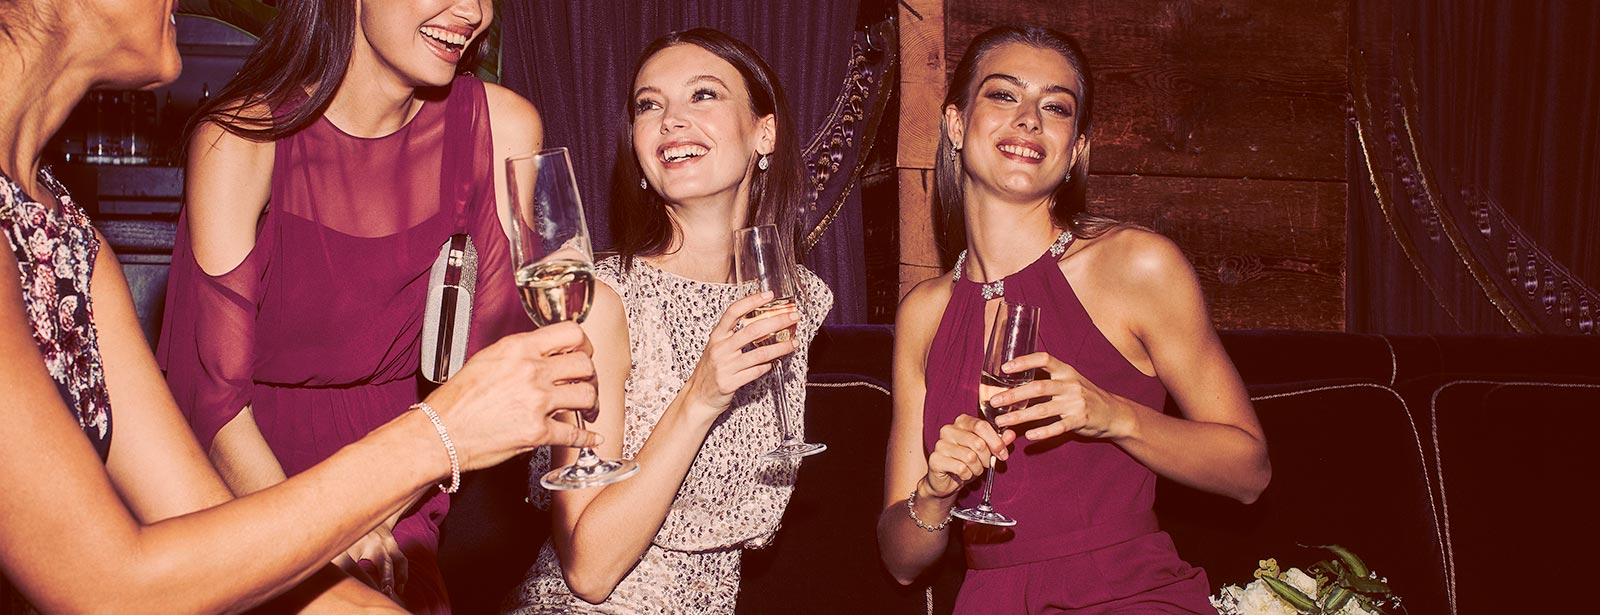 Four bridesmaids in mismatched dresses holding champagne glasses